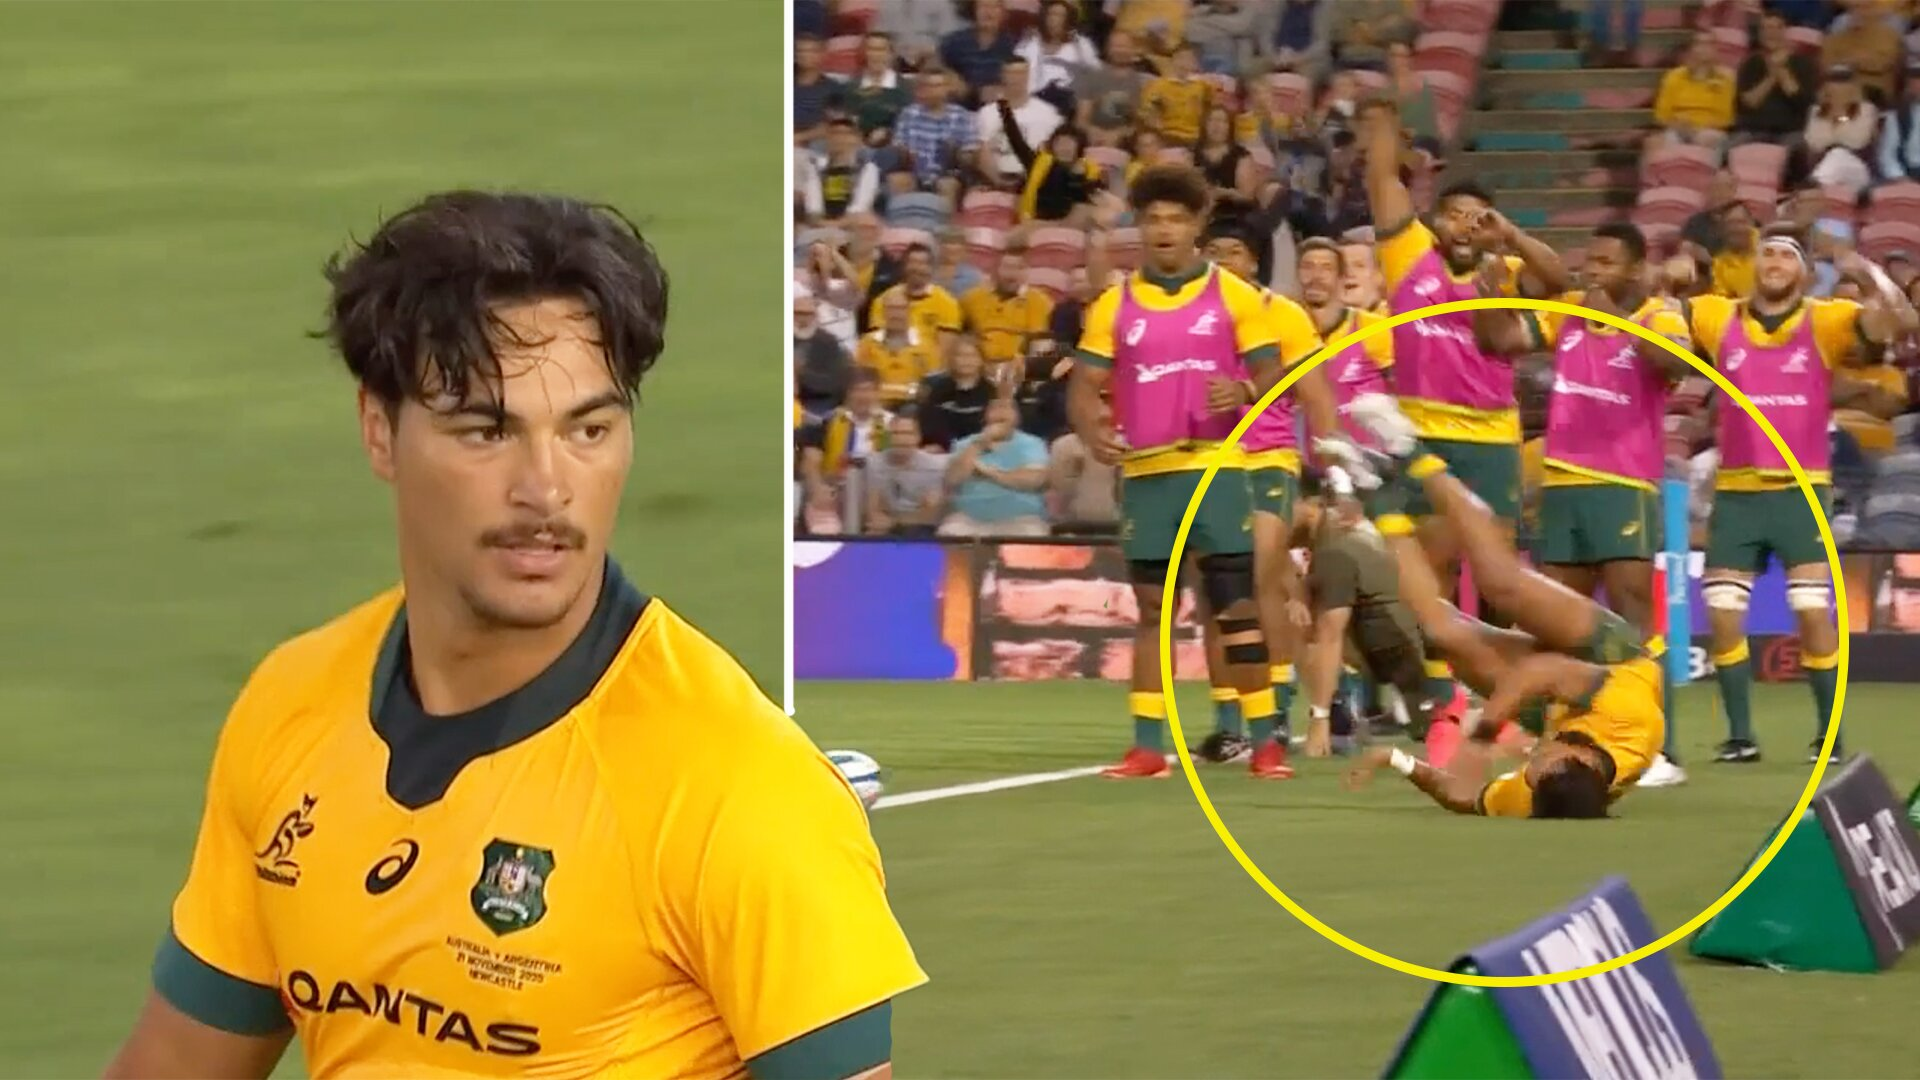 Jordan Petaia wows Tri-Nations crowd with sensational try scoring effort today